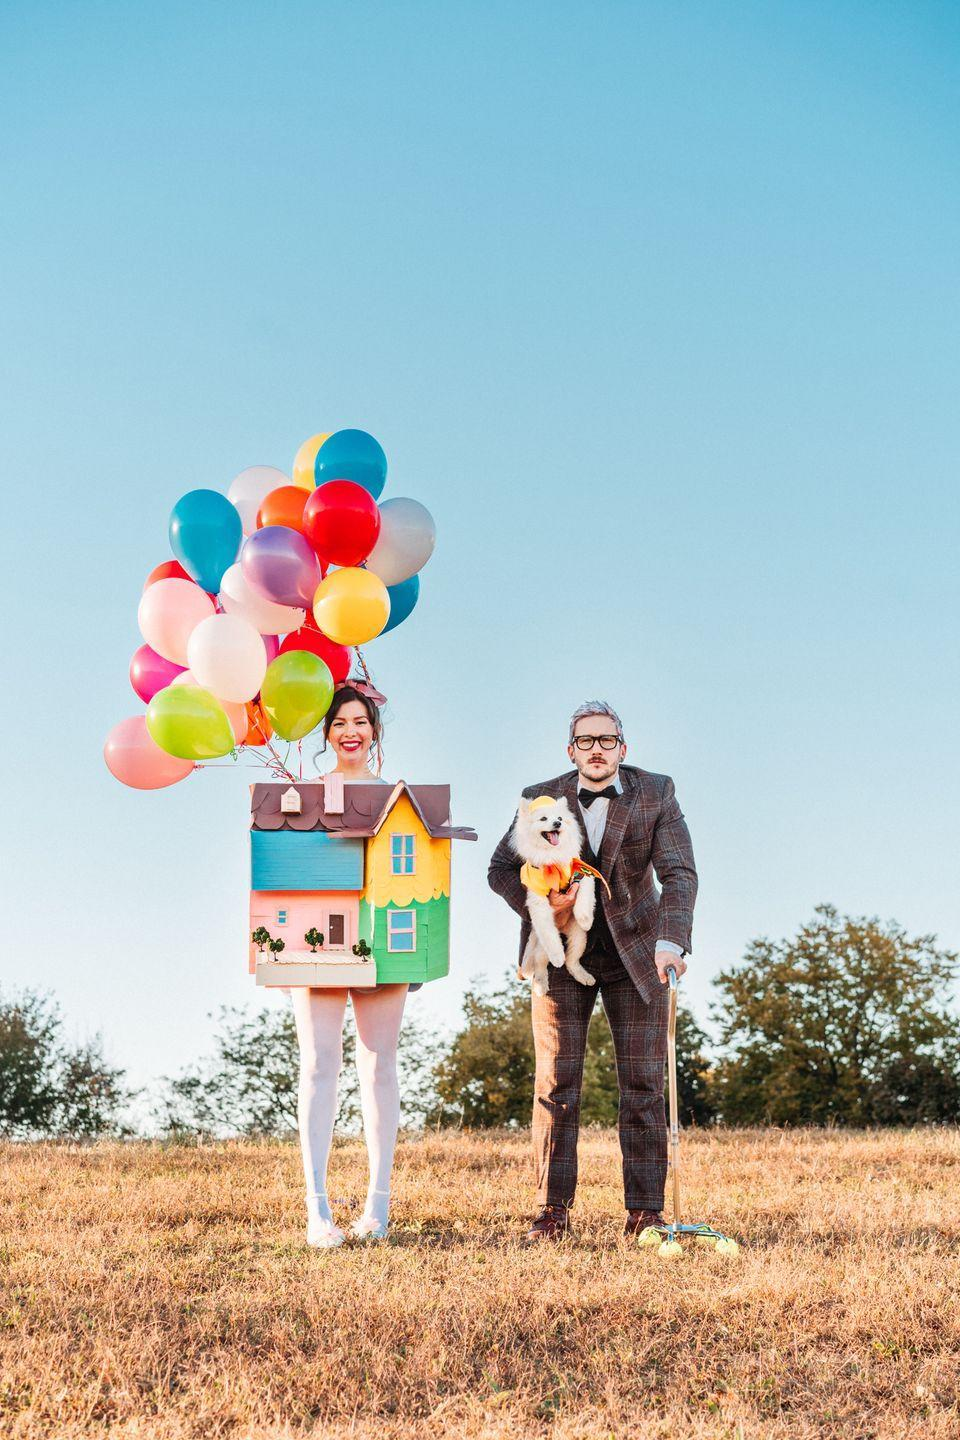 """<p>Get a glimpse into your future by convincing your partner to dress up as Russell, the sweet grandpa from <em>Up</em>. For your look, transform a cardboard box into a colorful house, balloons and all, to resemble Carl's.</p><p><em><a href=""""https://keikolynn.com/2018/10/halloween-up-costume-disney-pixar/"""" rel=""""nofollow noopener"""" target=""""_blank"""" data-ylk=""""slk:Get the tutorial at Keiko Lynn »"""" class=""""link rapid-noclick-resp"""">Get the tutorial at Keiko Lynn »</a></em> </p>"""